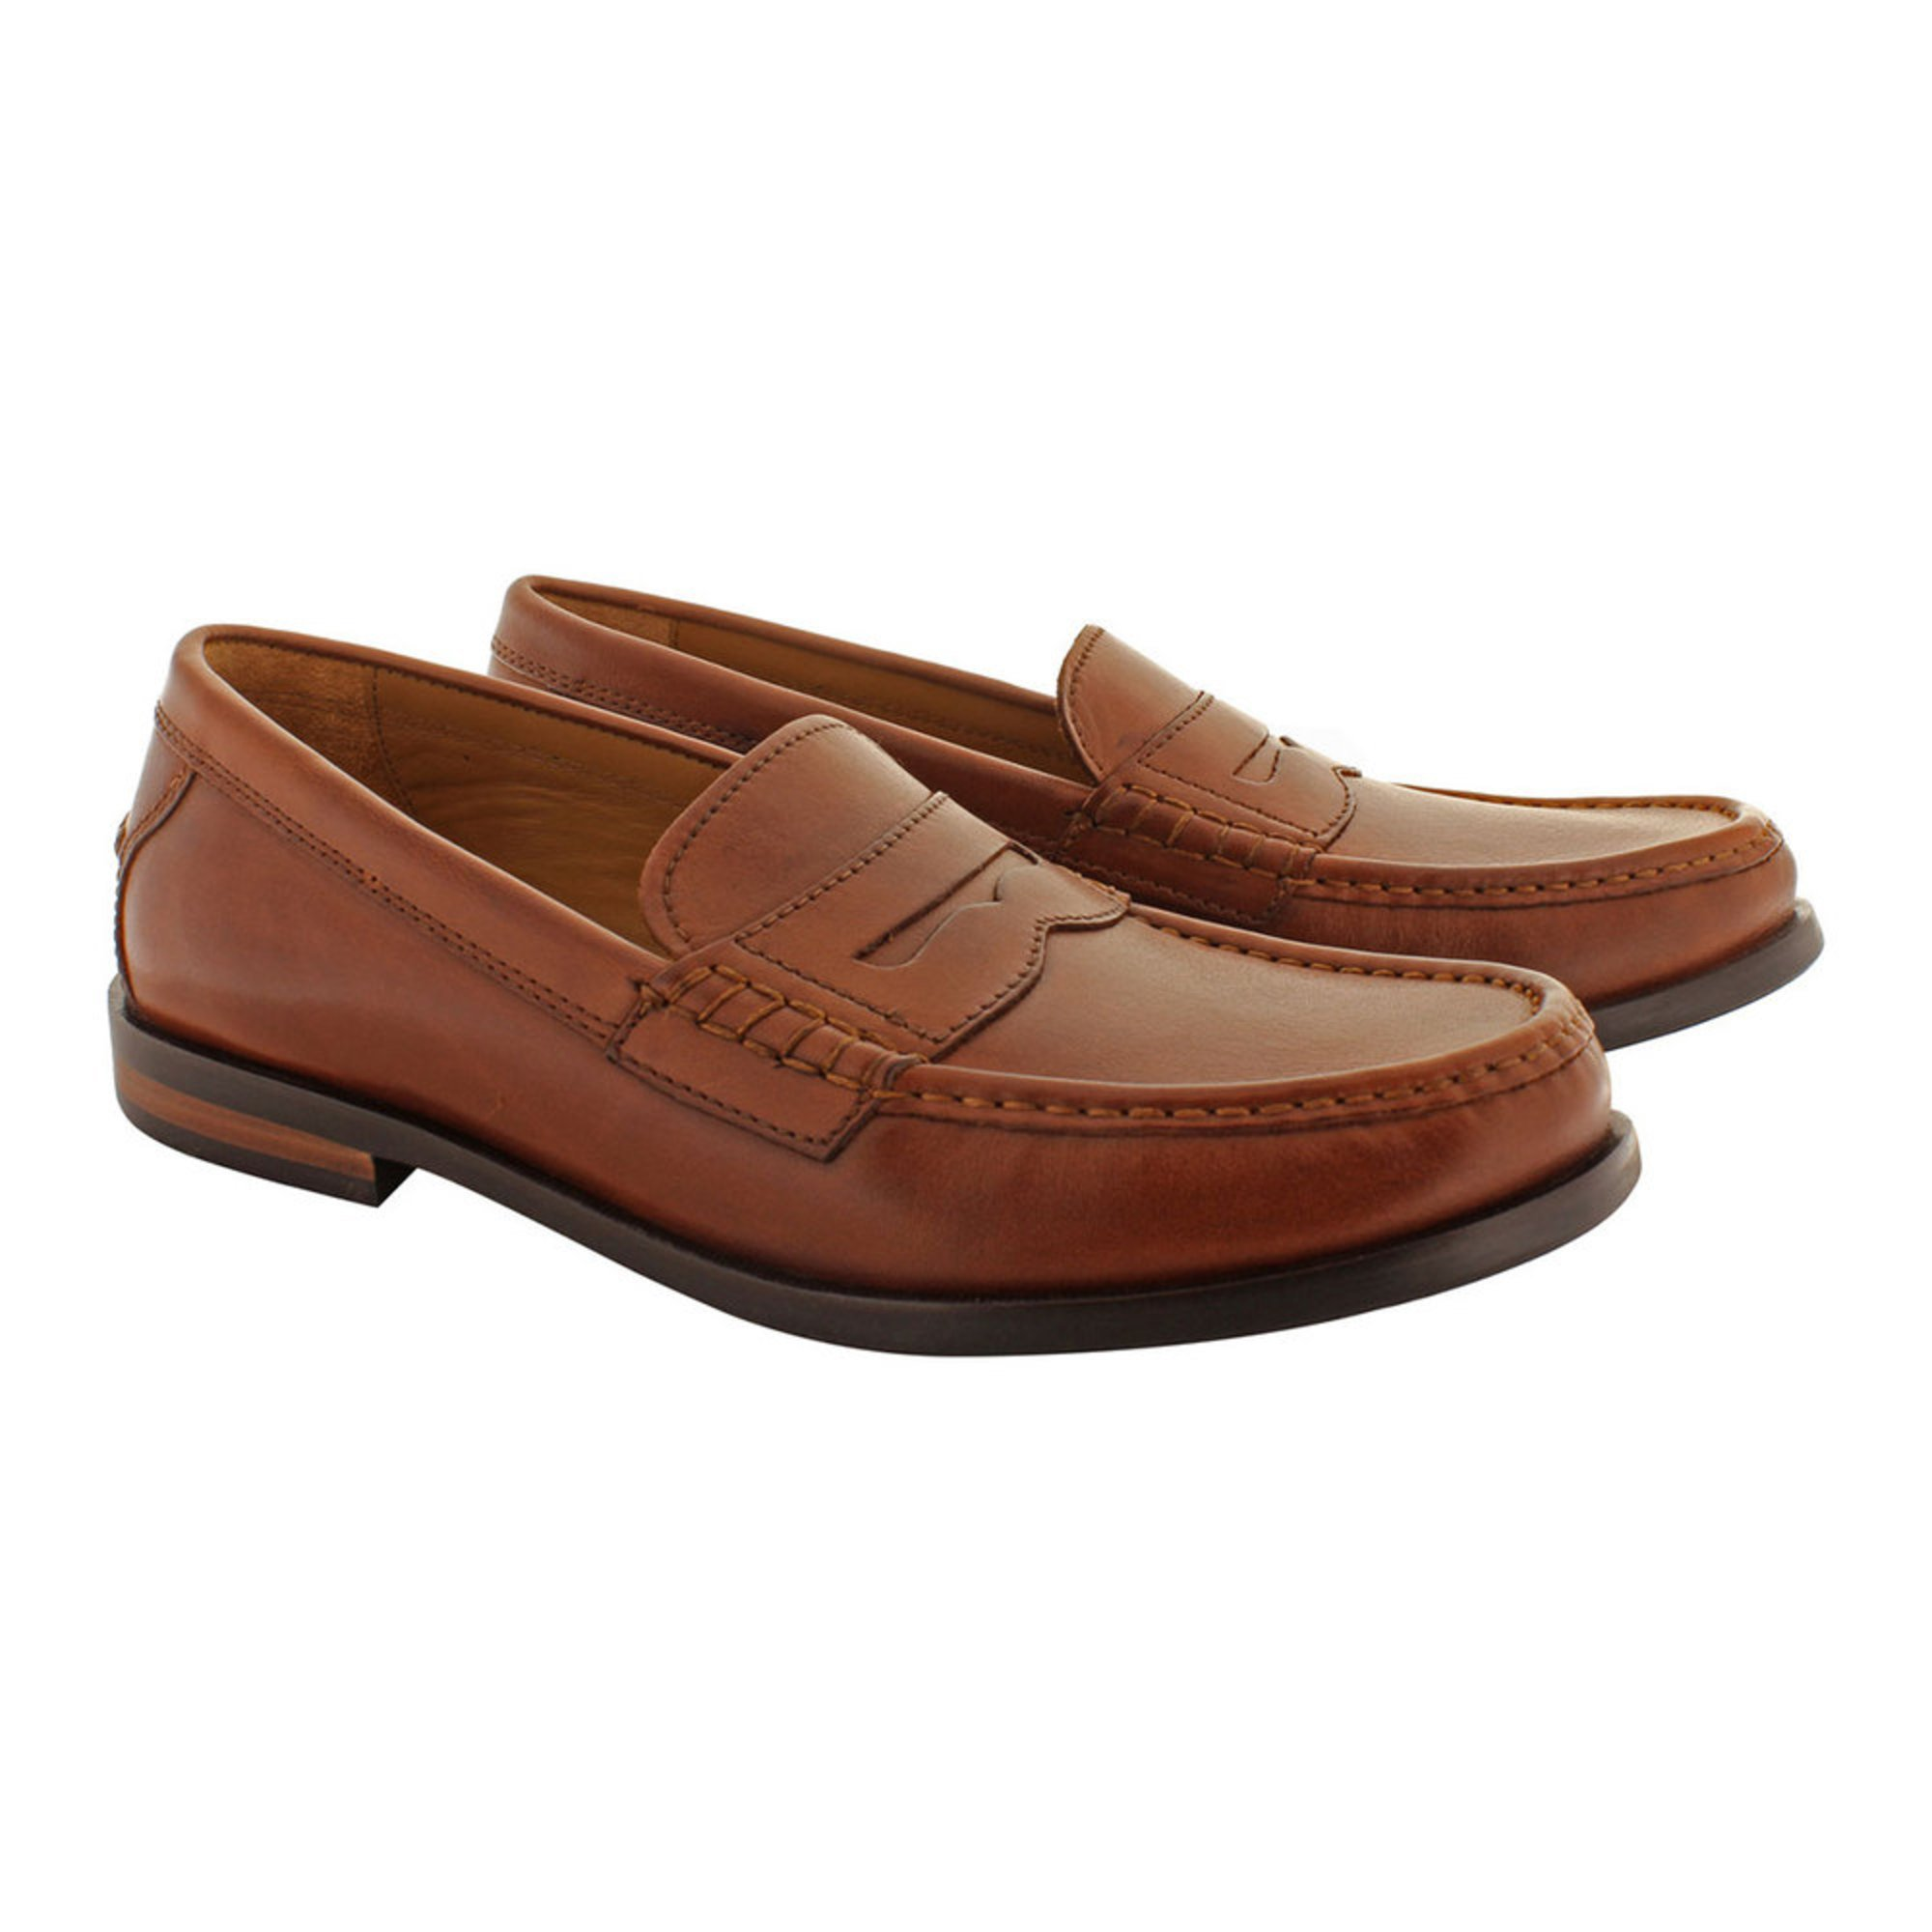 fbf2228ada2 Cole Haan. Cole Haan Men s Pinch Friday Penny Loafer